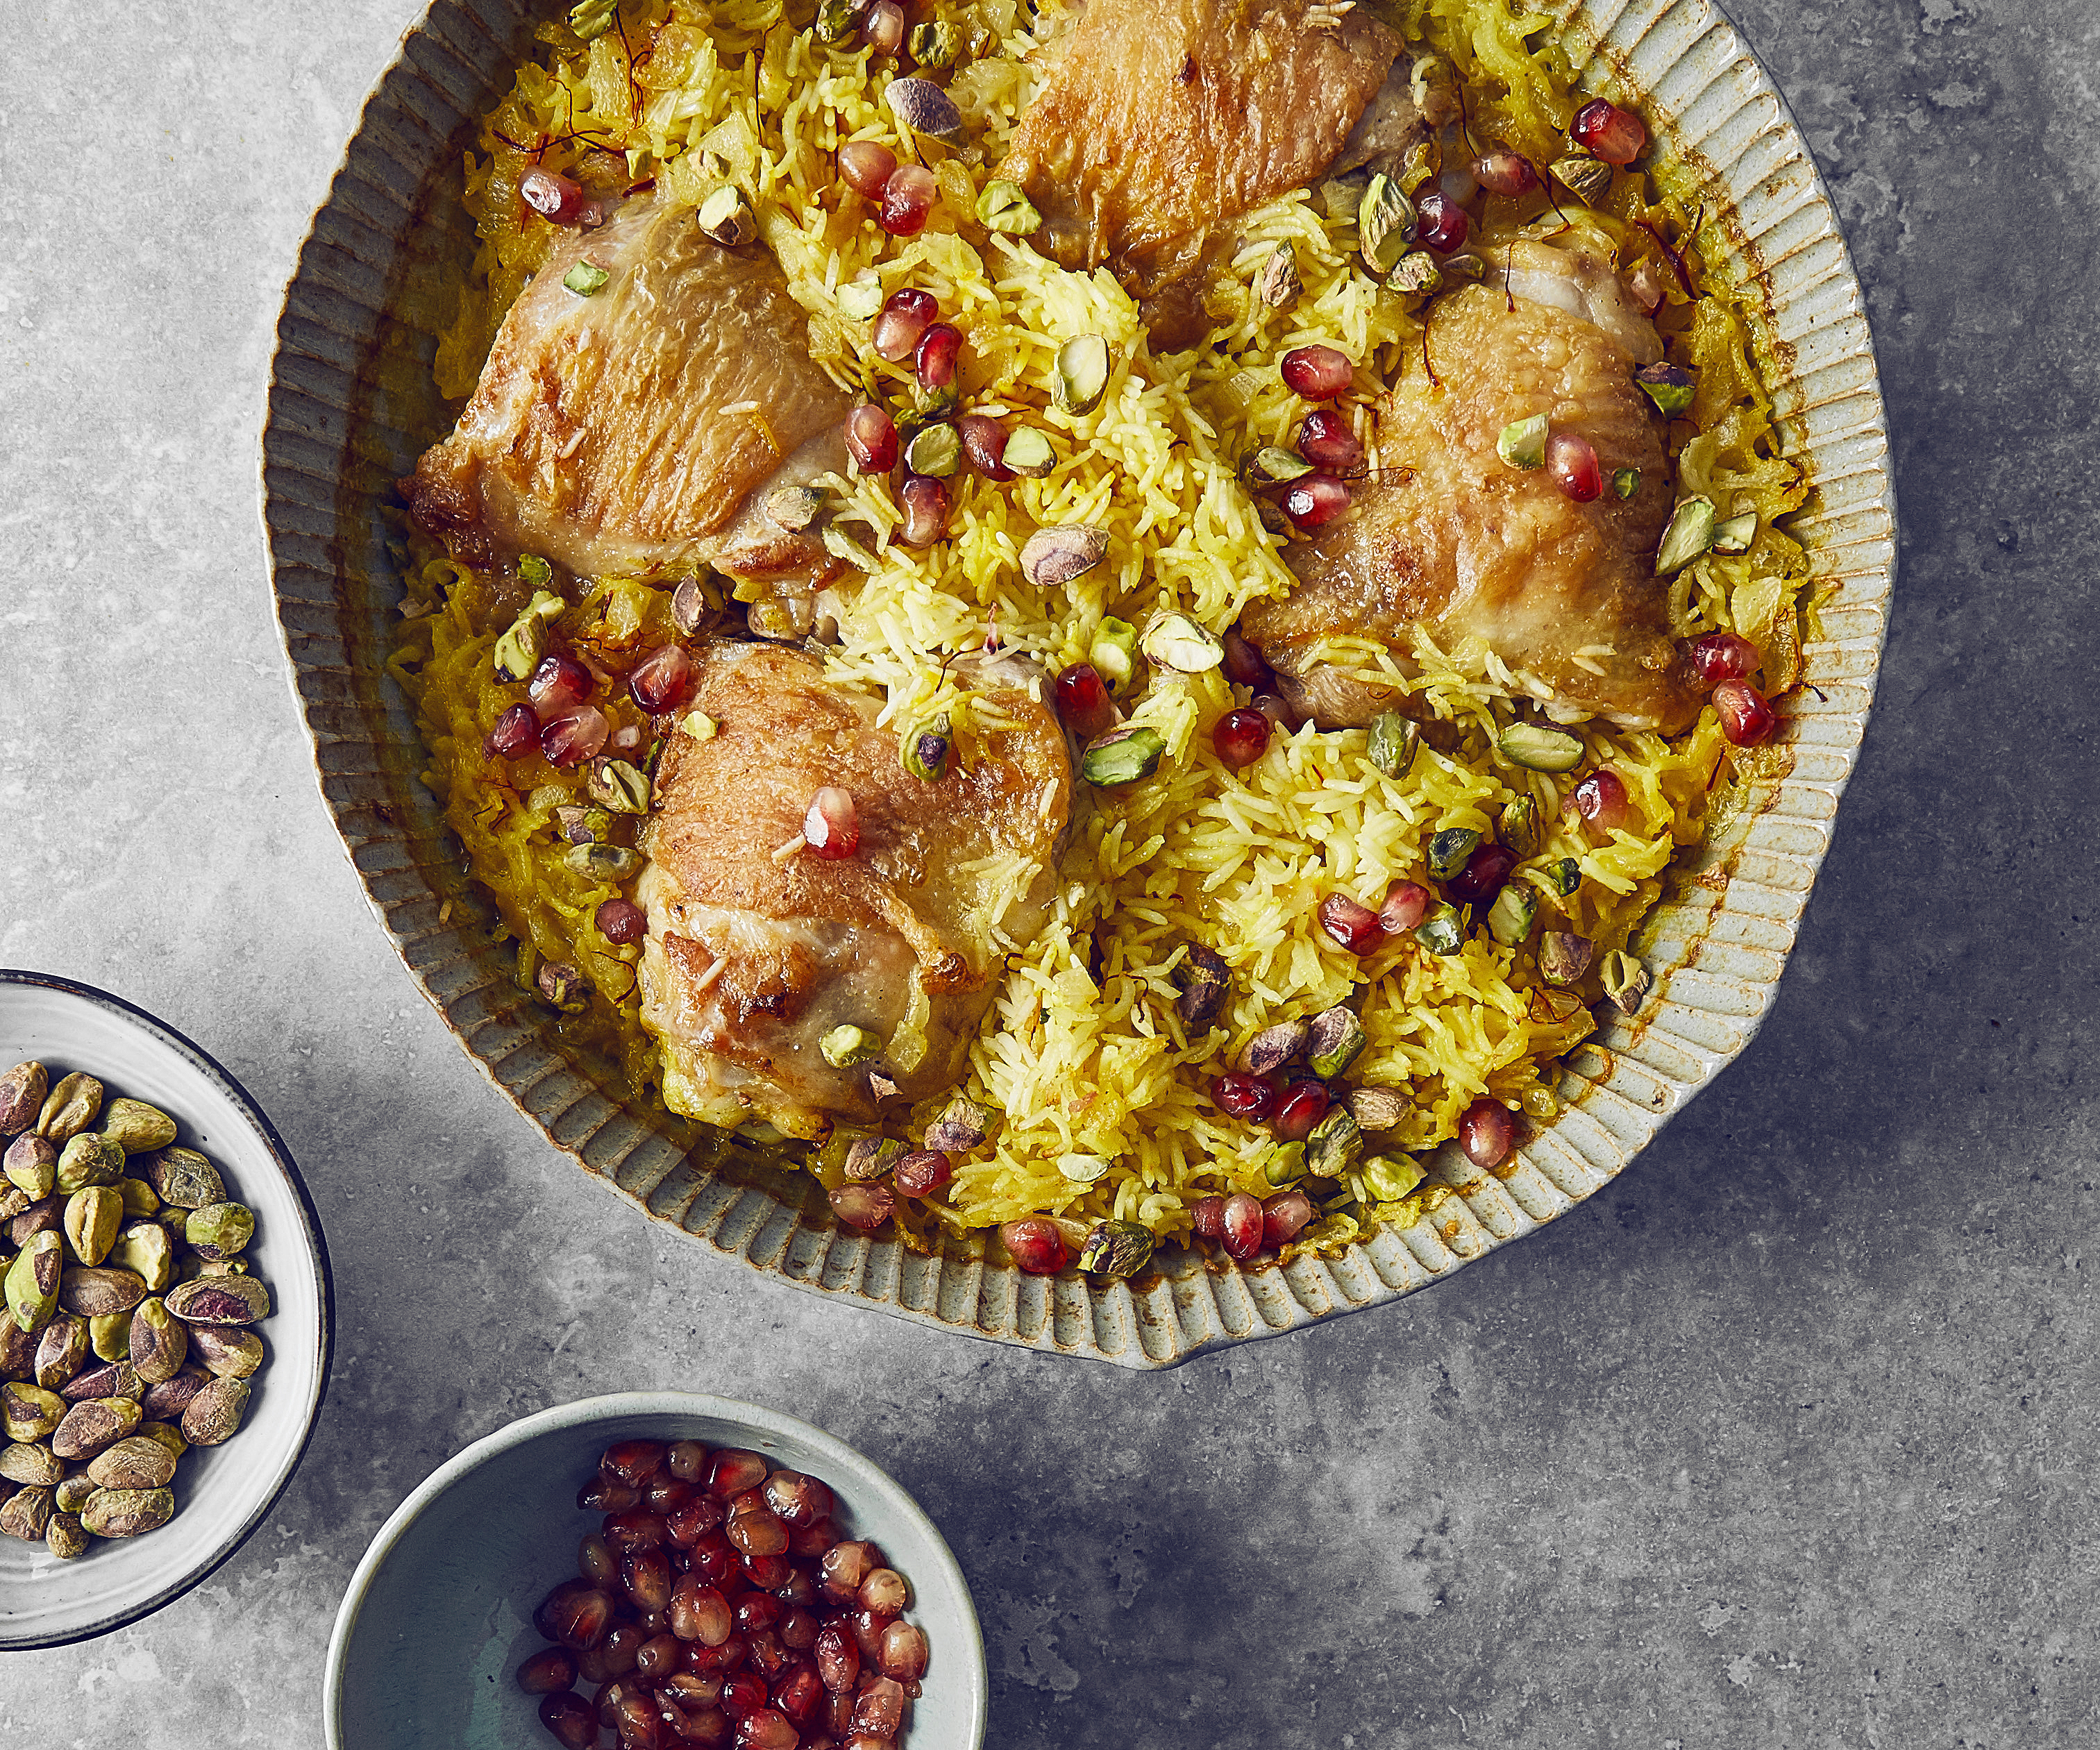 Baked Chicken and Saffron Rice